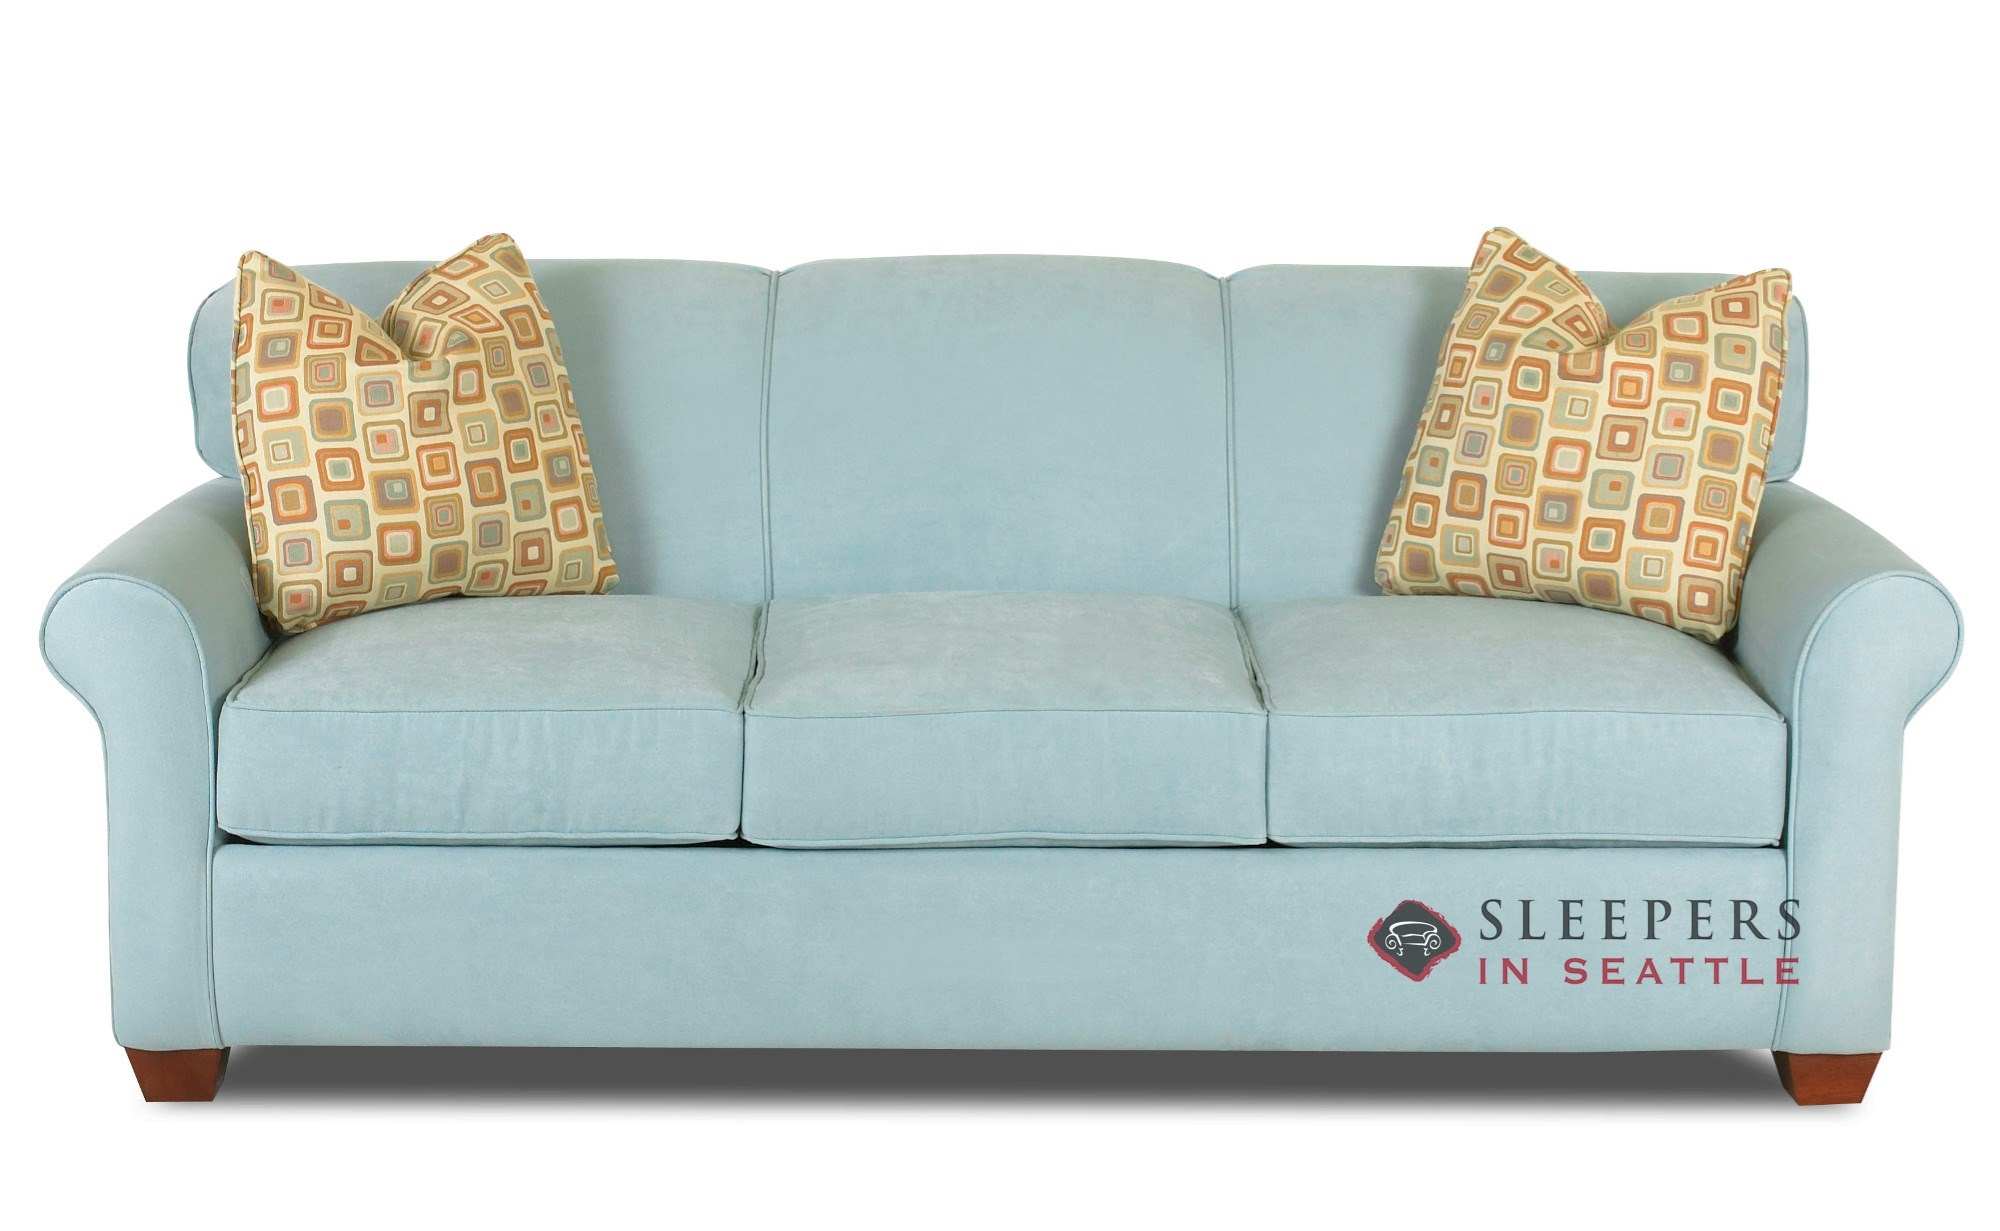 Couches Sleeper Savvy Calgary Queen Sleeper Sofa